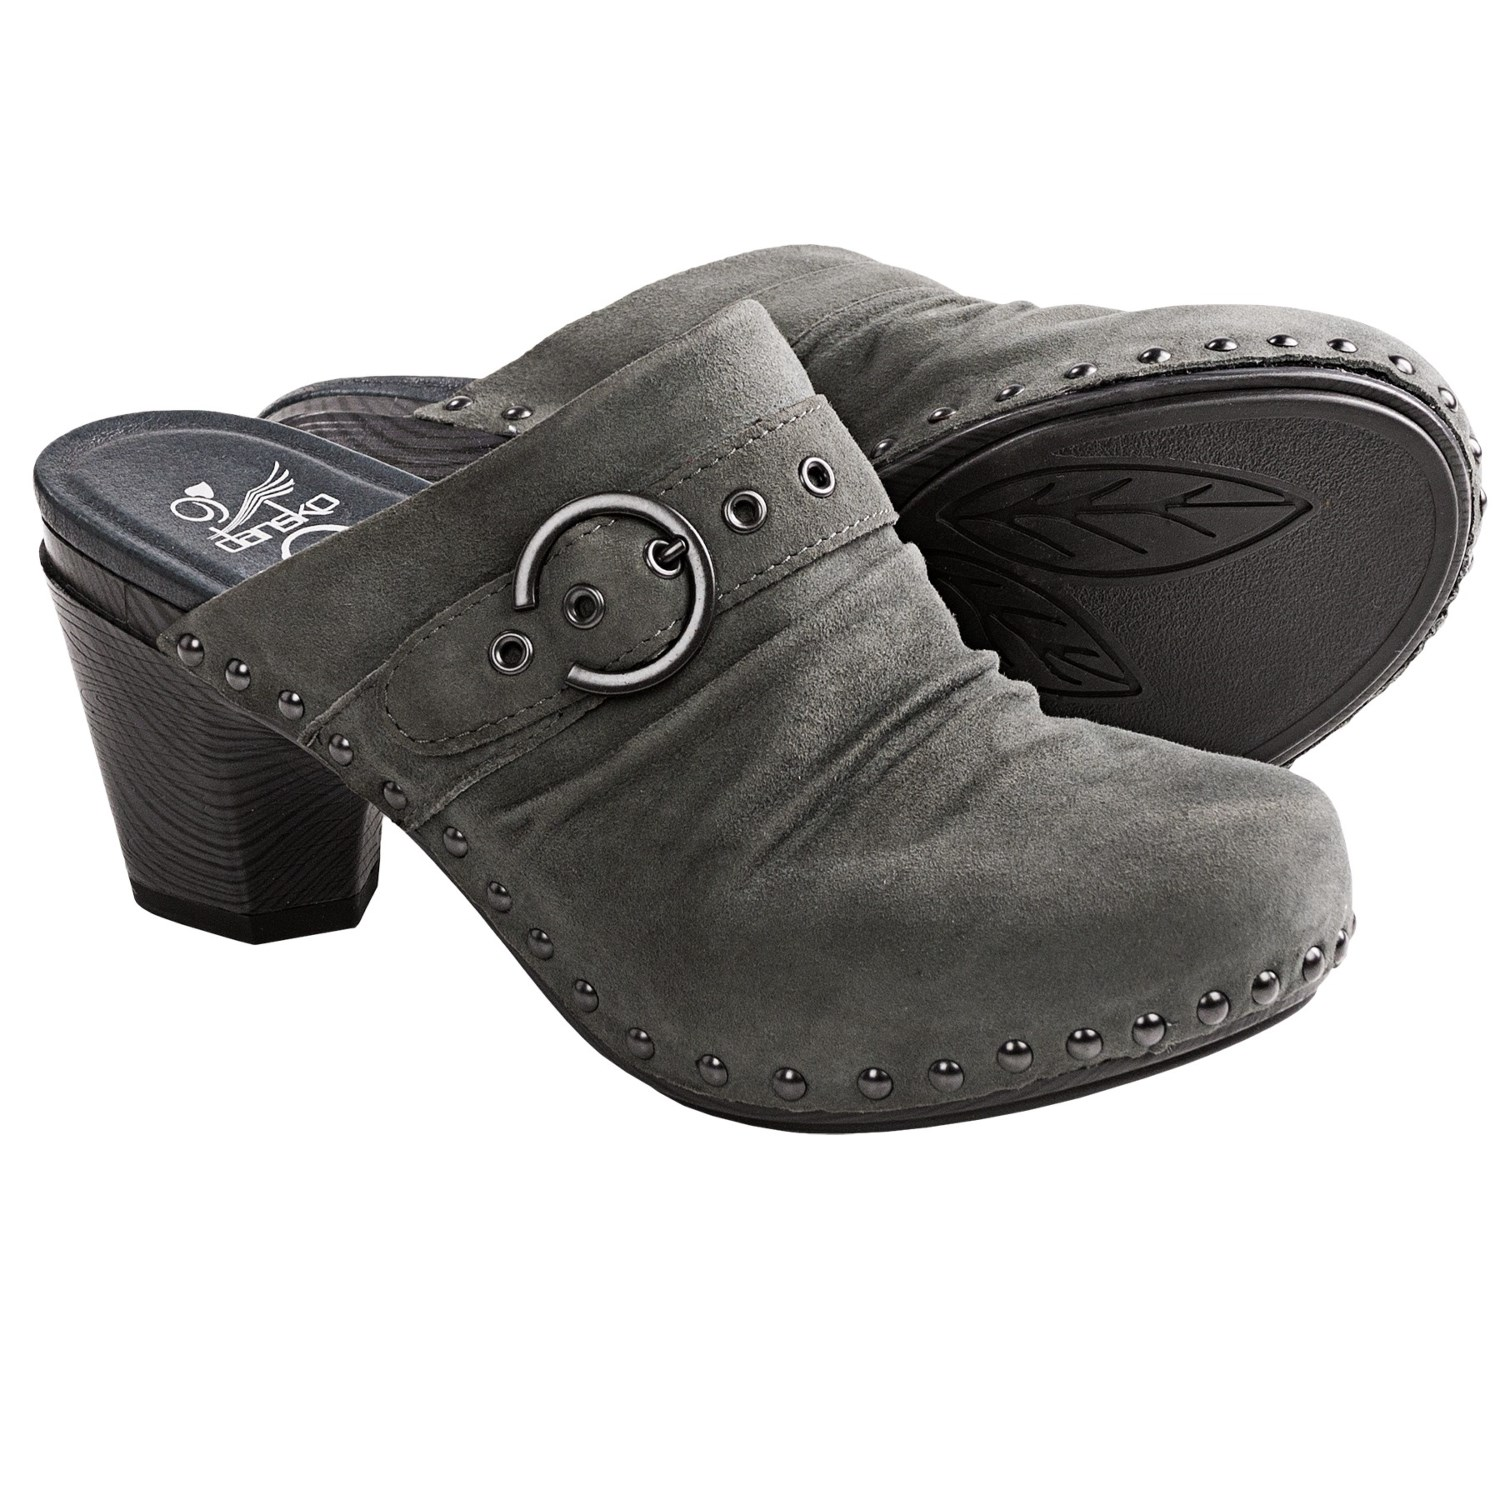 Dansko Shoes New Arrivals